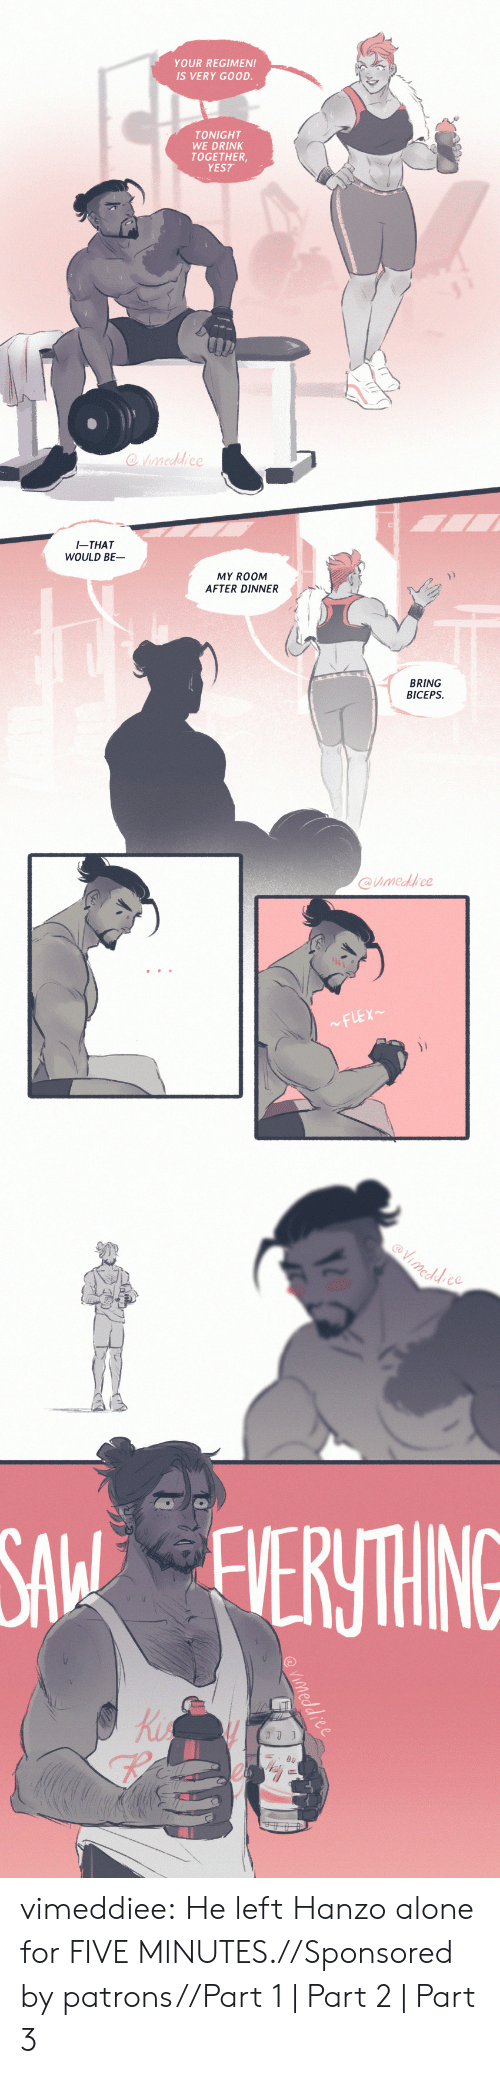 Being Alone, Tumblr, and Blog: YOUR REGIMEN!  IS VERY GOOD.  TONIGHT  WE DRINK  TOGETHER  YES?   I-THAT  WOULD BE  MY ROOM  AFTER DINNER  兀  BRING  BICEPS  @imedfrce   eddce  SA ERTHING  Ki  re vimeddiee:  He left Hanzo alone for FIVE MINUTES.//Sponsored by patrons//Part 1 | Part 2| Part 3